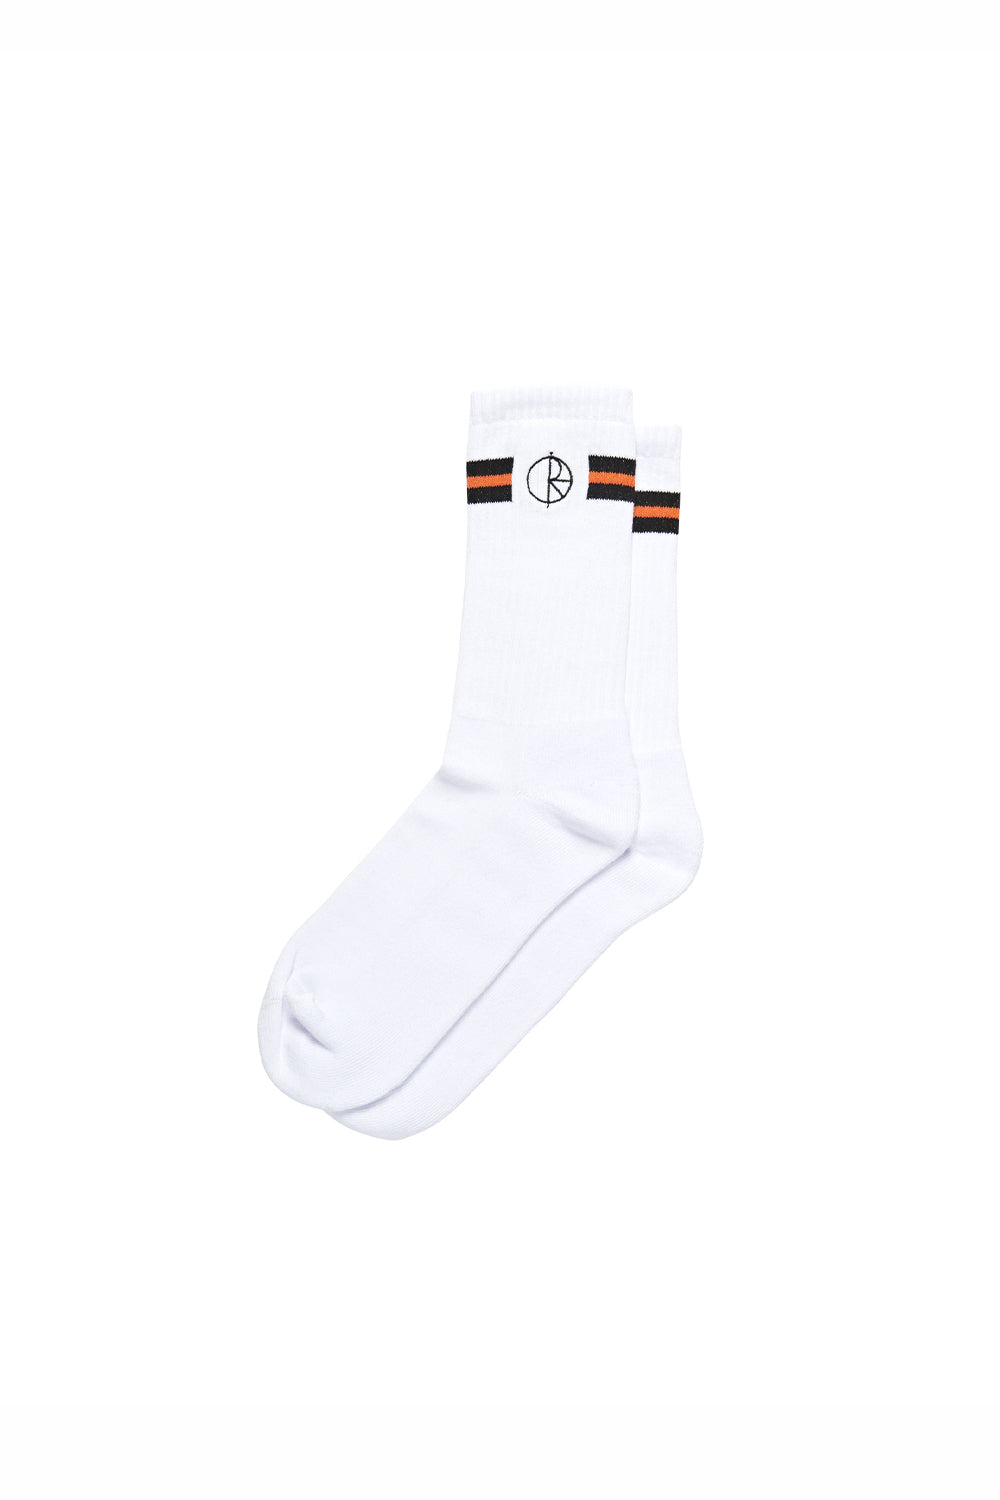 Polar Skate Co Stroke Logo Socks - Black/White/Orange | Buy Polar Skate Co Online